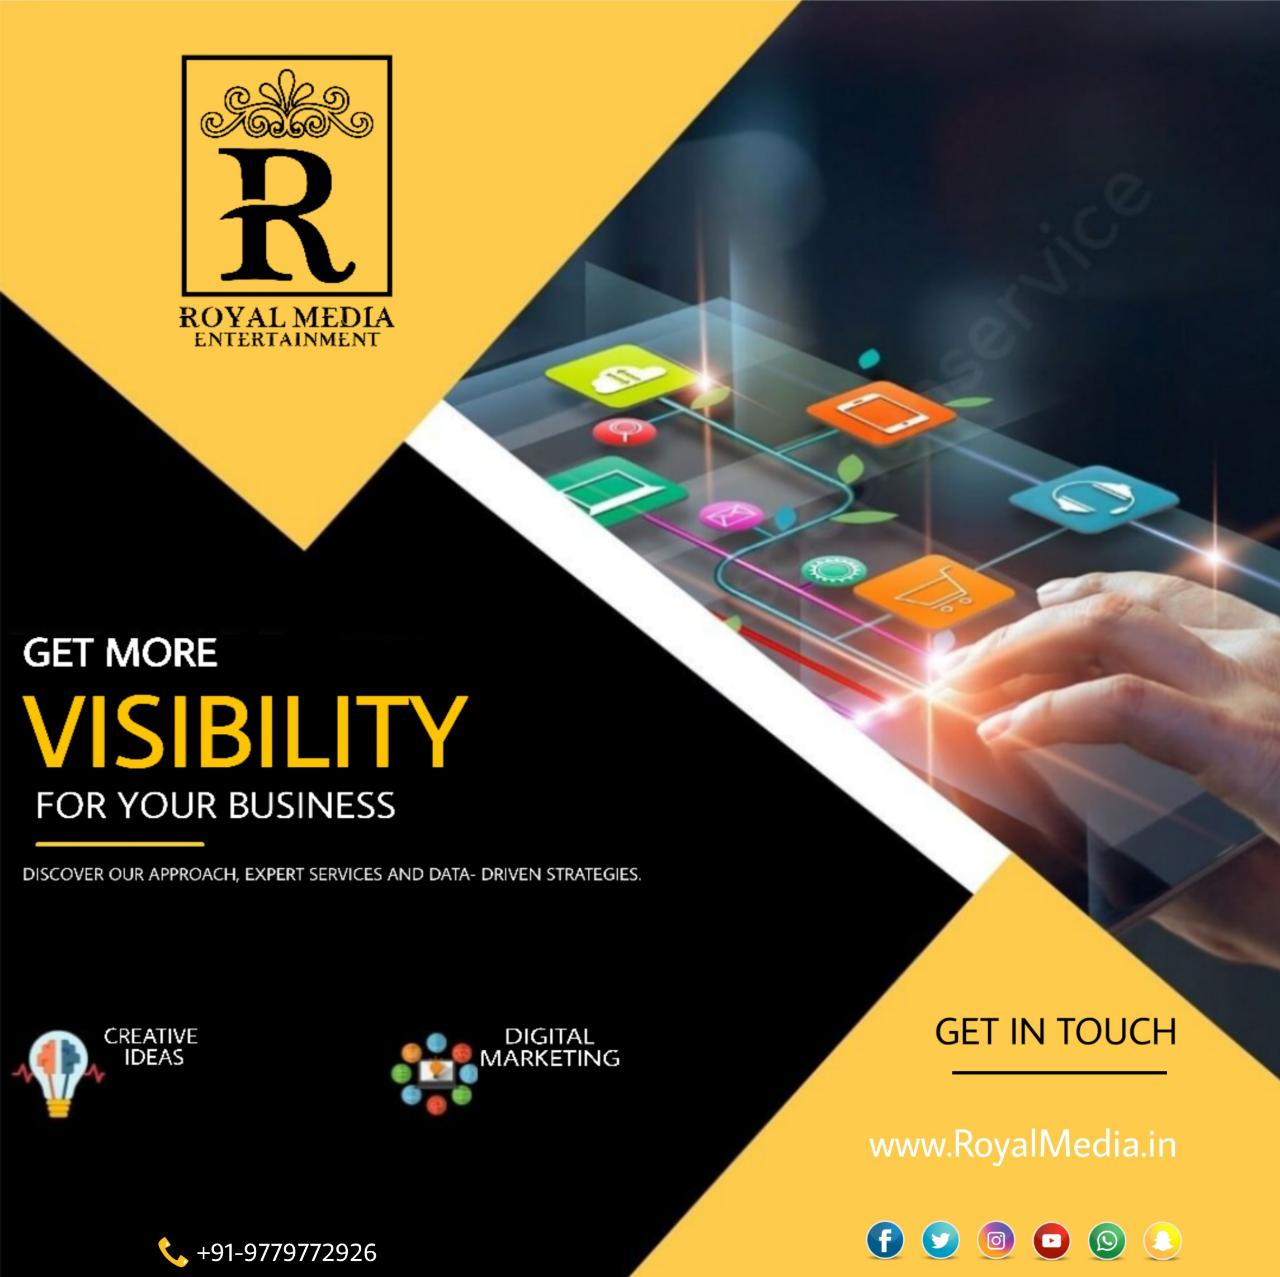 Gain more visibility in your business.